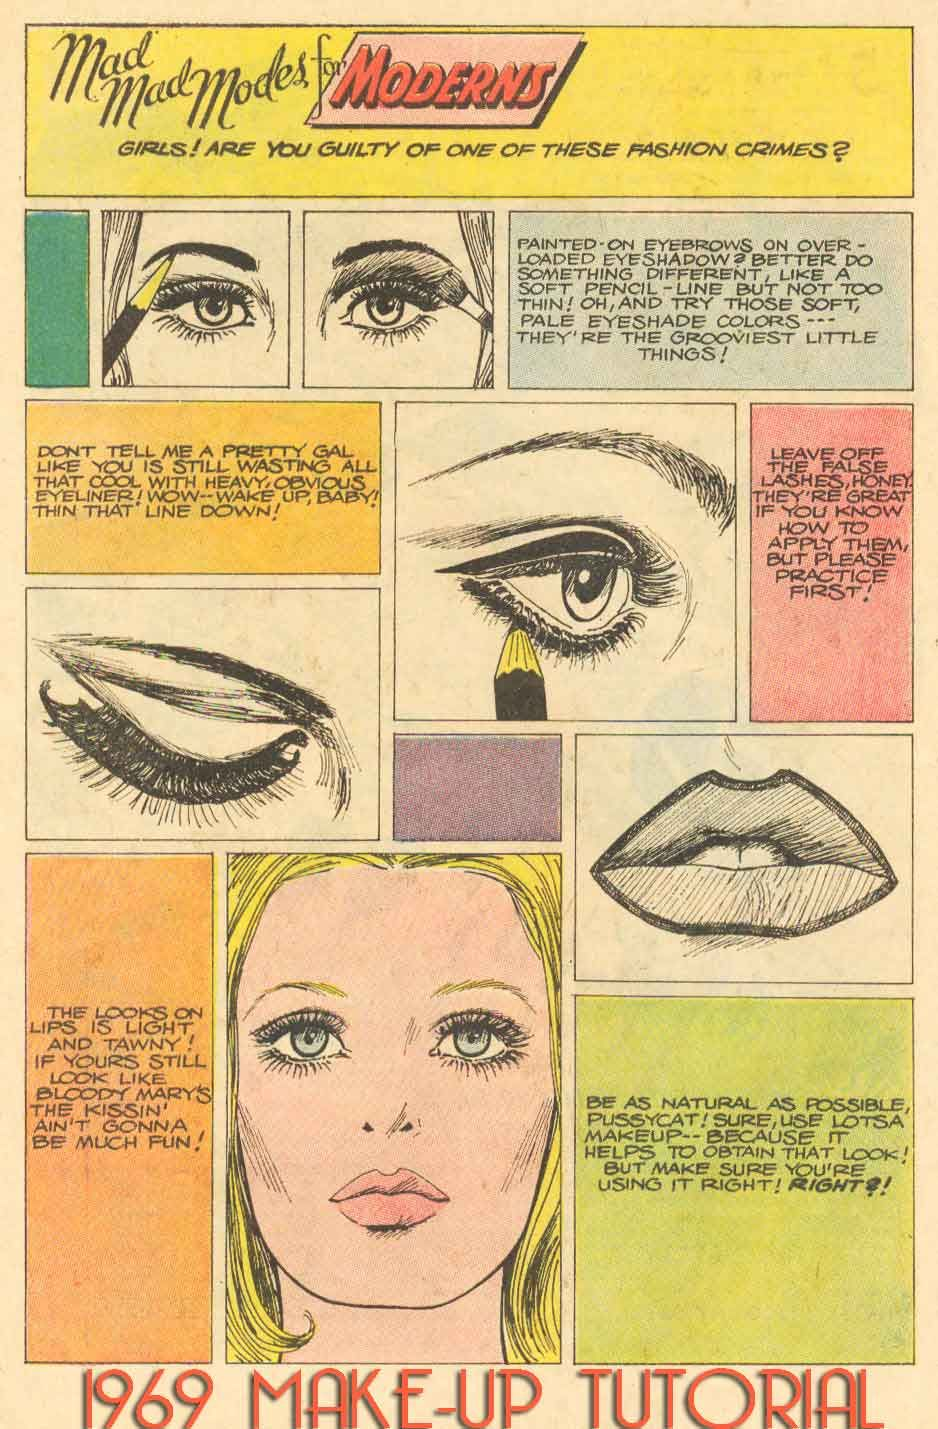 60 S Makeup Lesson For The Hippie From 1969 With Images Retro